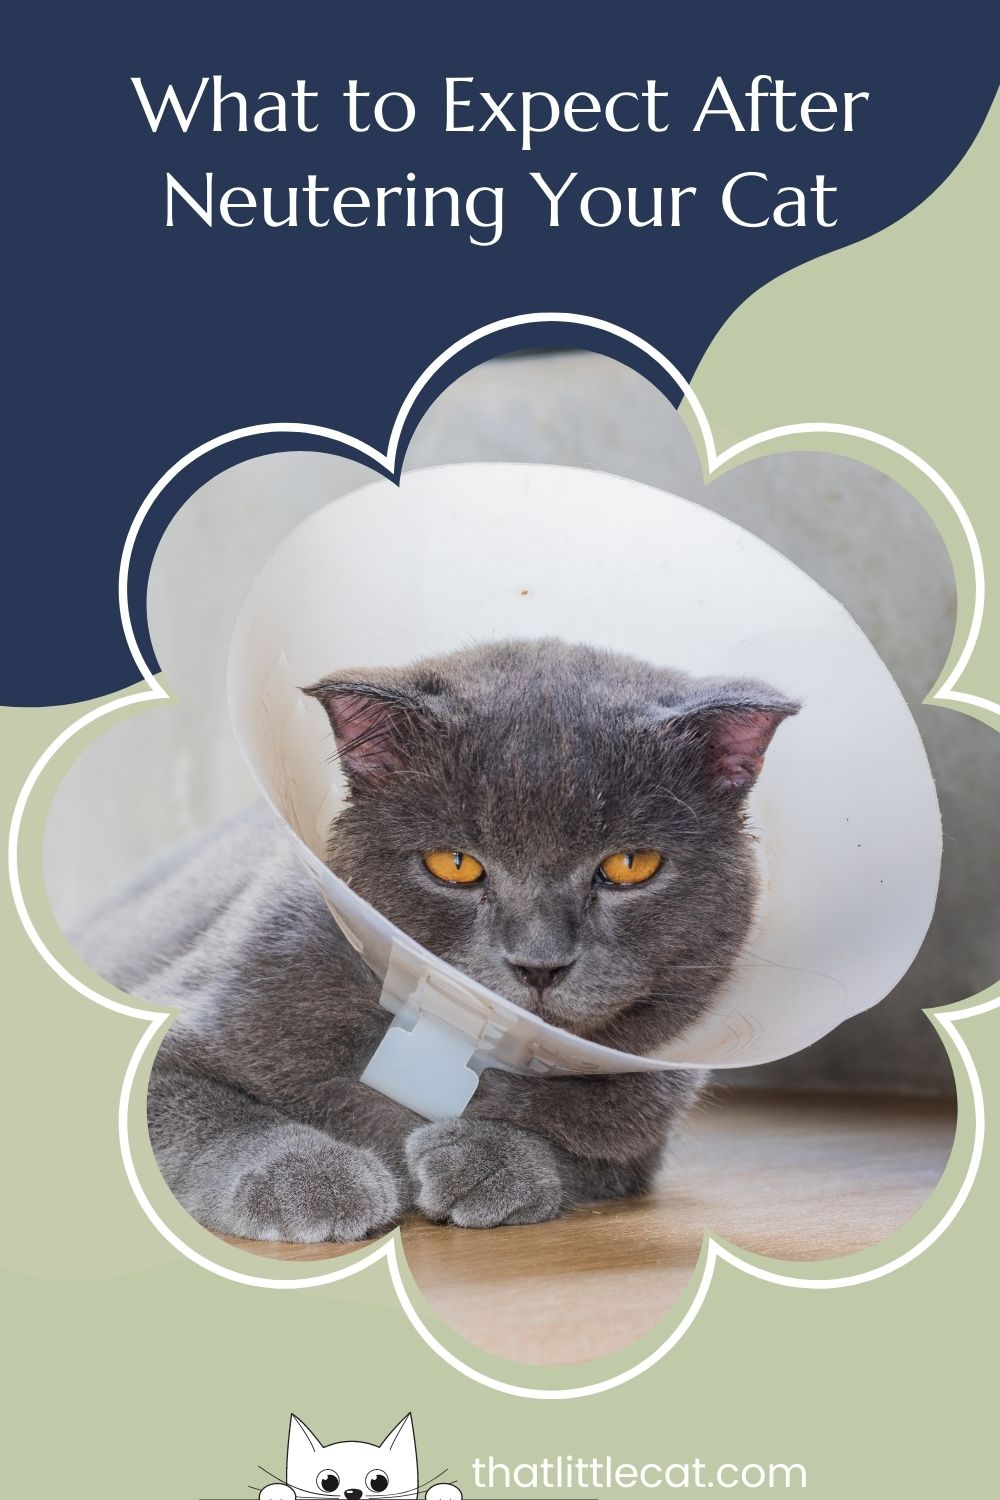 Cat with a cone on its head